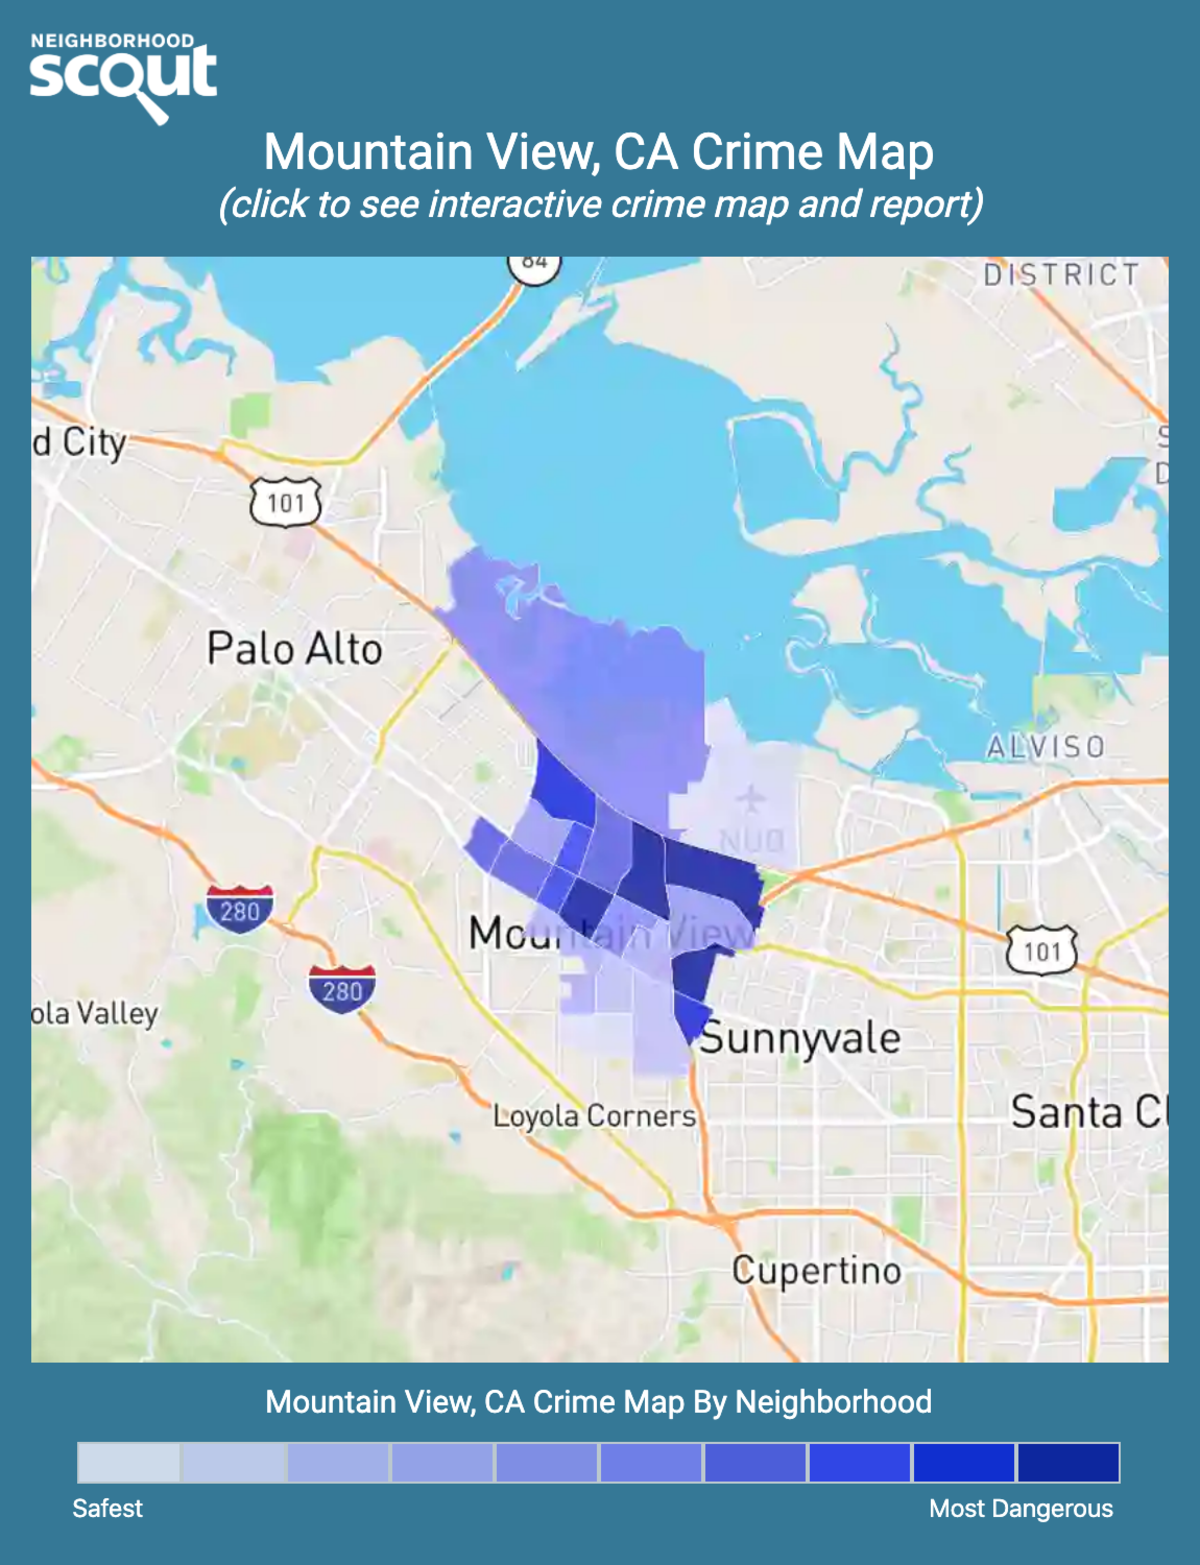 Mountain View, CA Crime Rates and Statistics - NeighborhoodScout